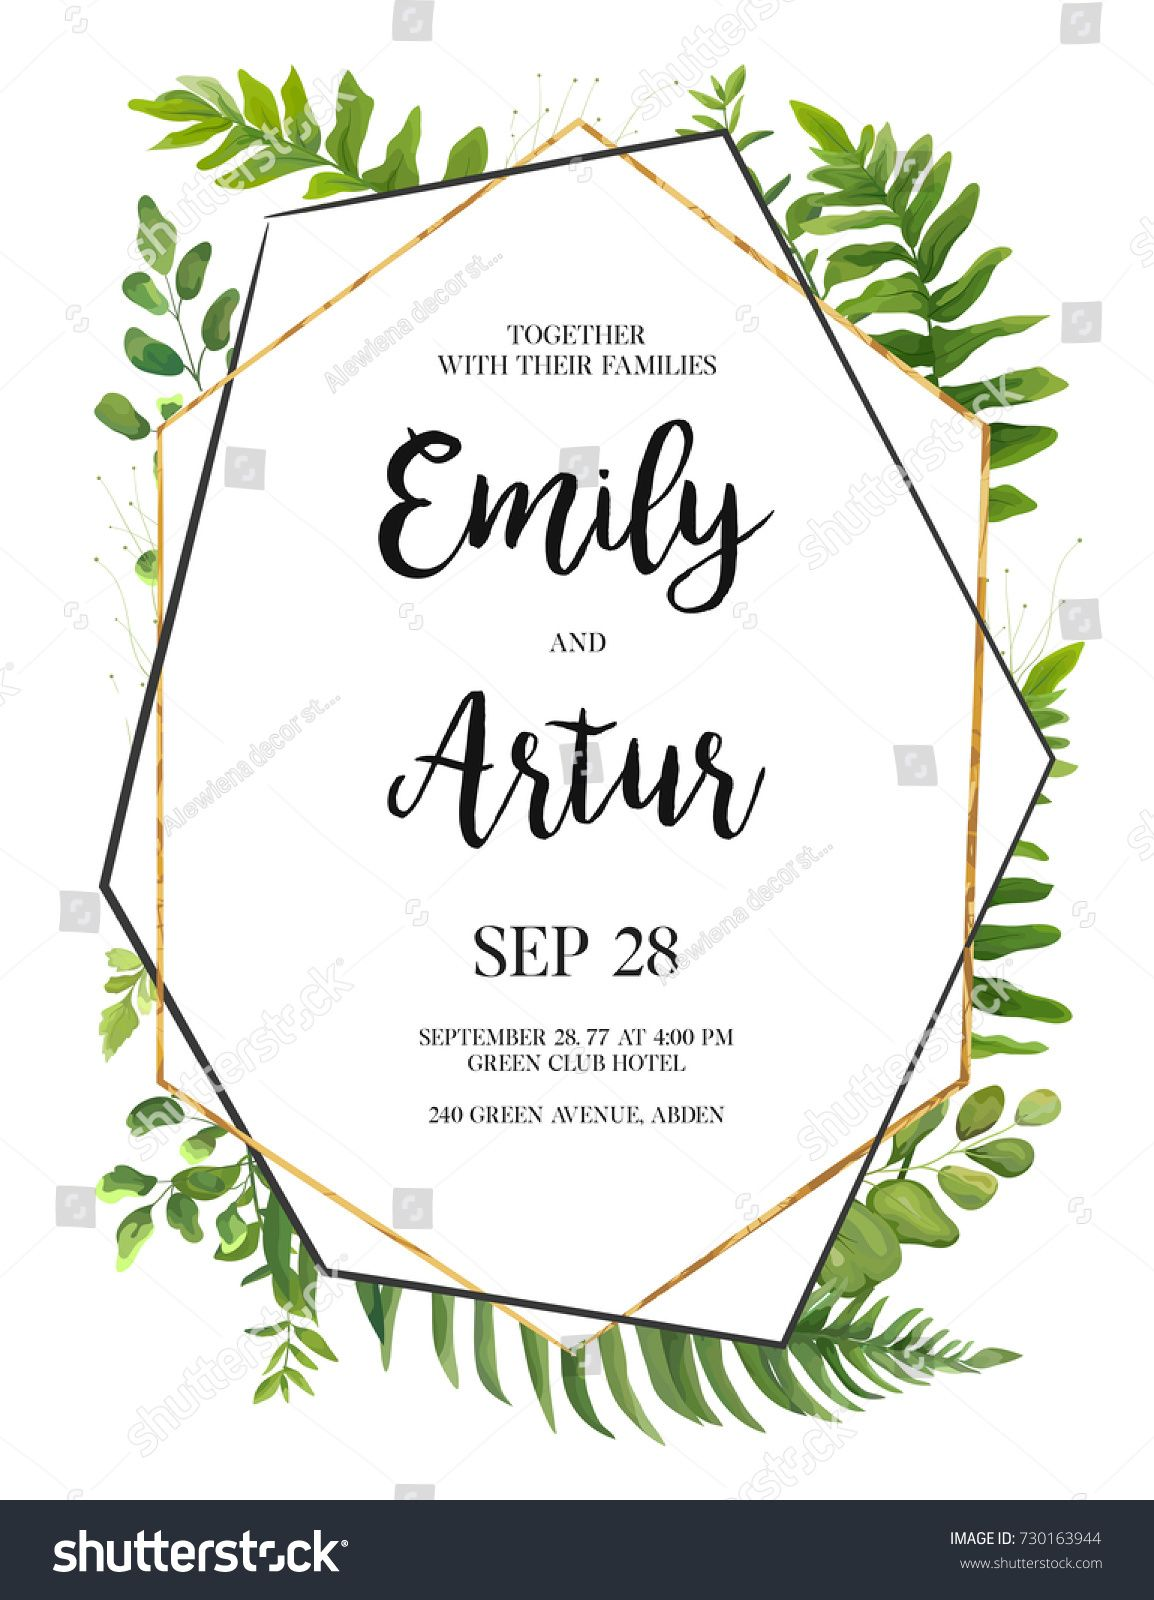 Vector floral design card green fern forest leaves herb plant vector floral design card green fern forest leaves herb plant greenery mix natural botanical stopboris Image collections